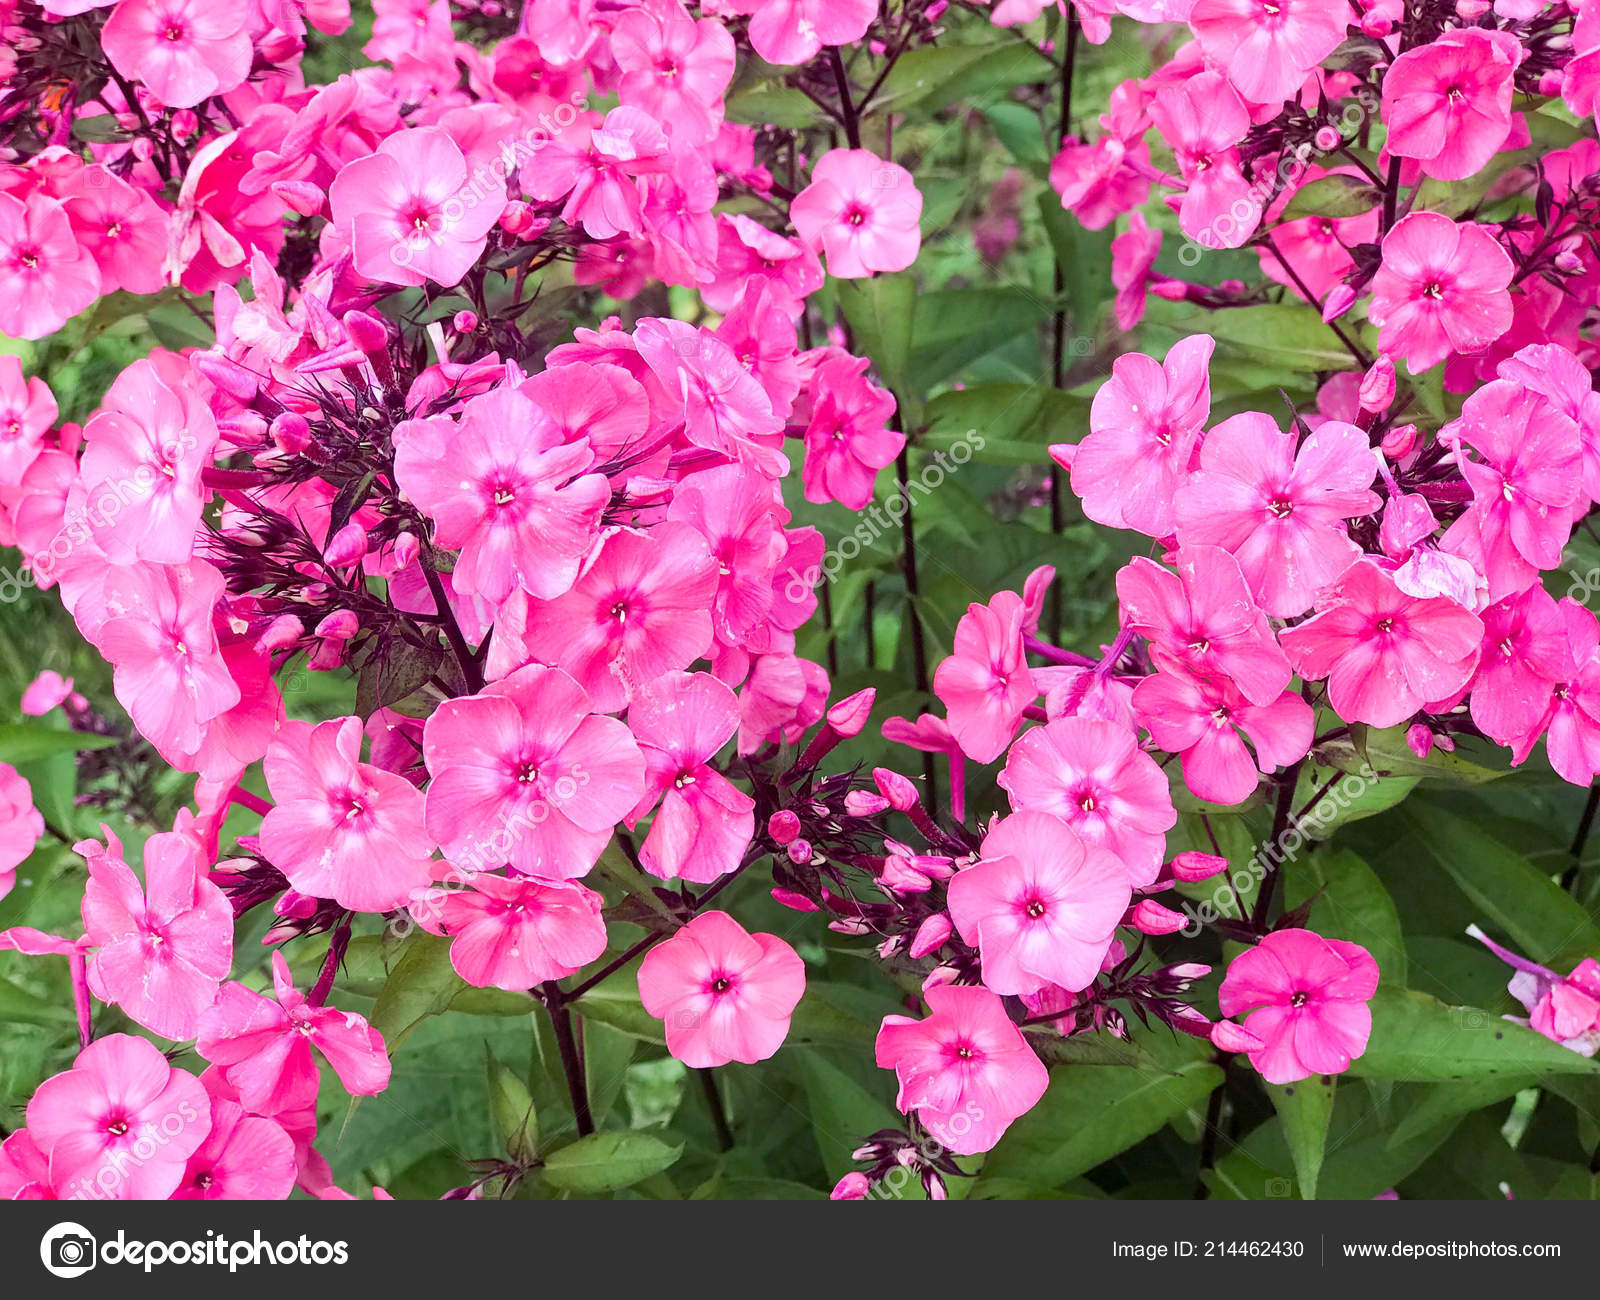 Plant With Small Pink Flowers And Large Leaves - Flowers Healthy